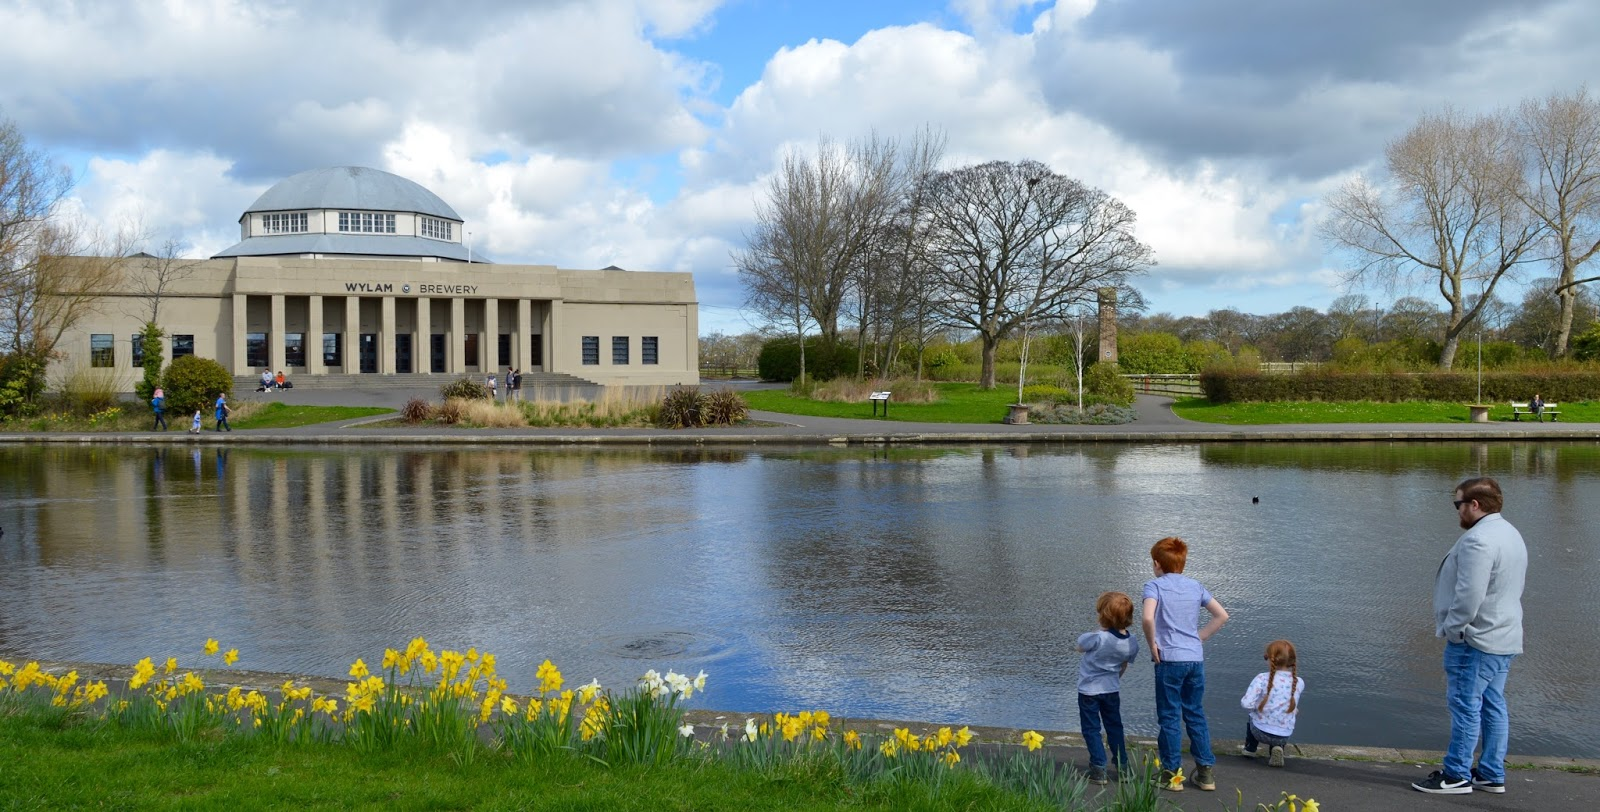 Exhibition Park Newcastle |  Wylam Brewery by the boating lake with daffodils in bloom